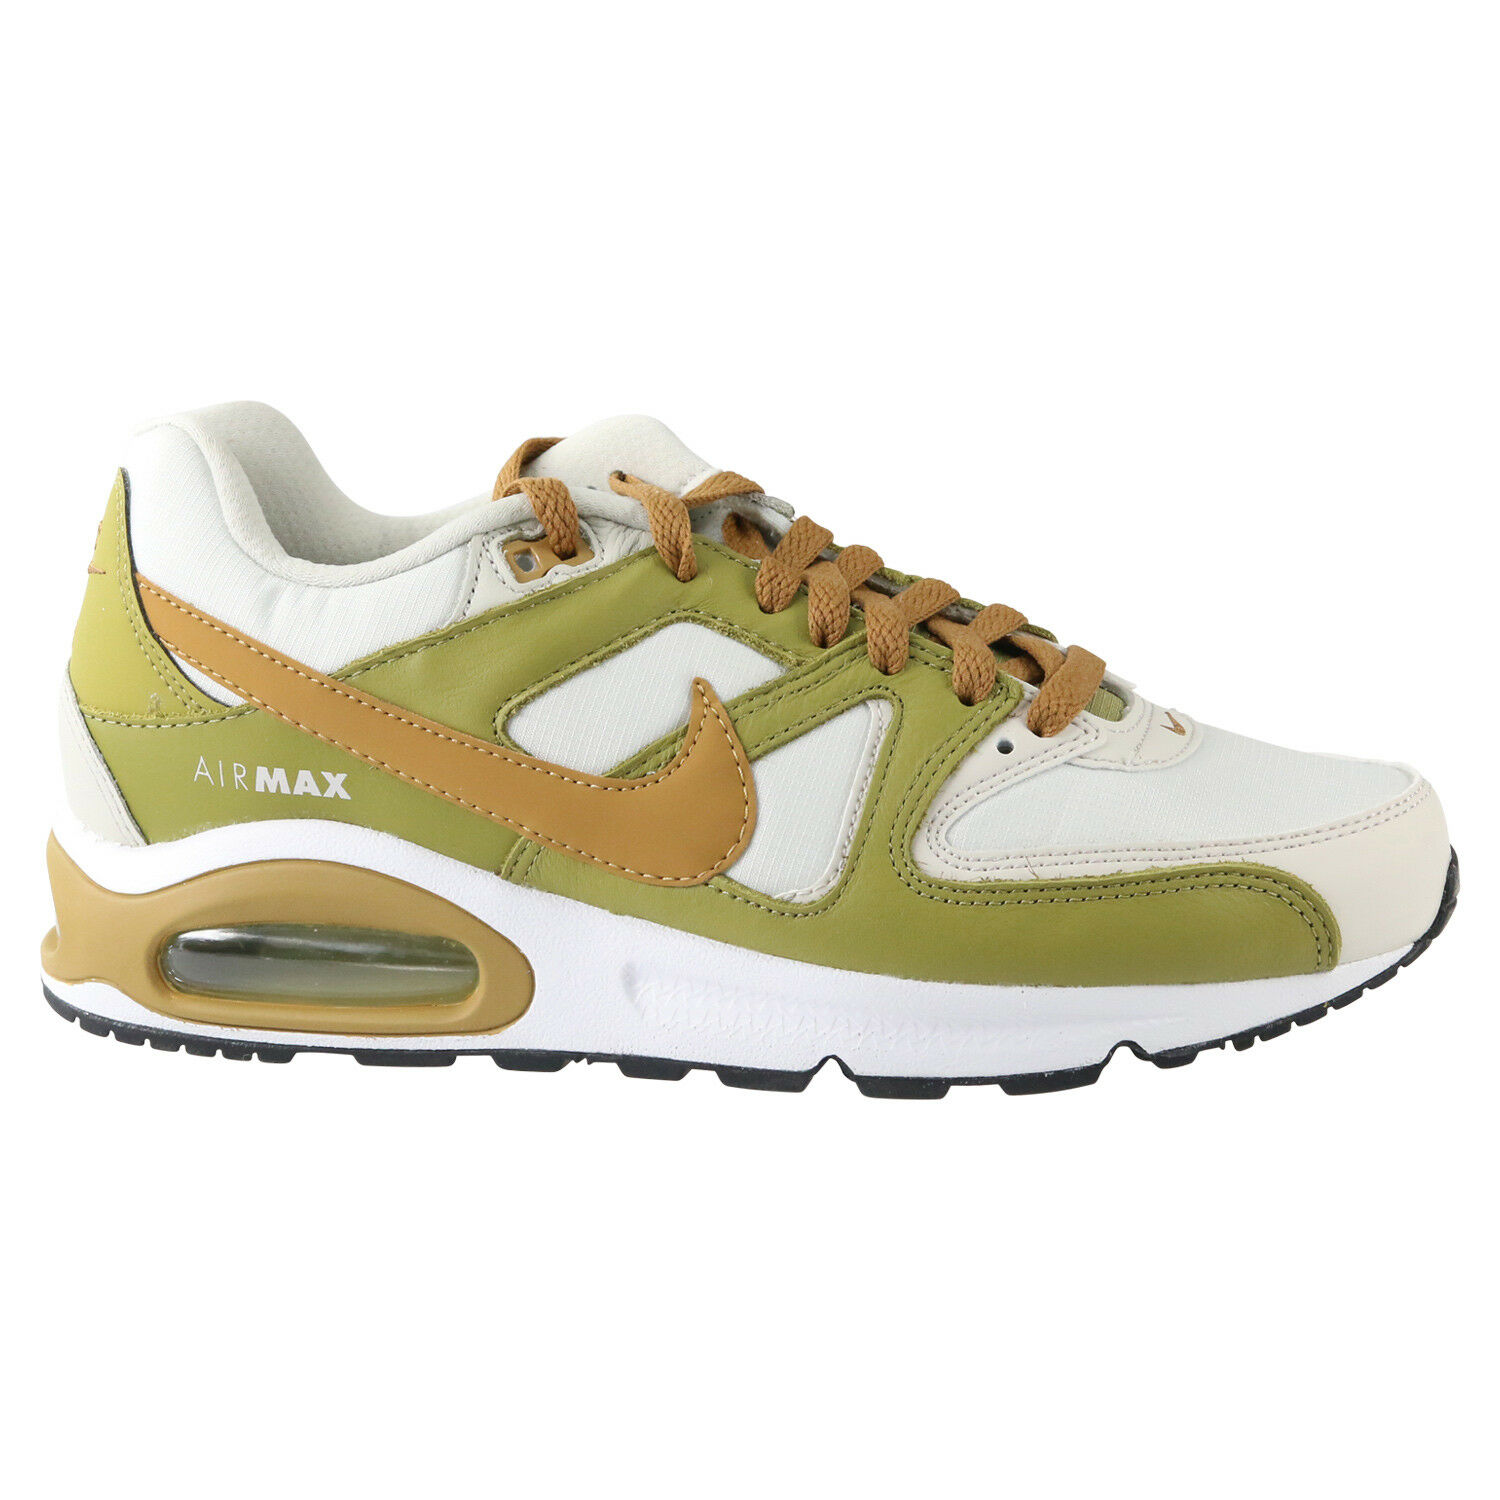 Nike Air Max Command Light Bone Muted Bronze 629993-035 Size 7.5 UK